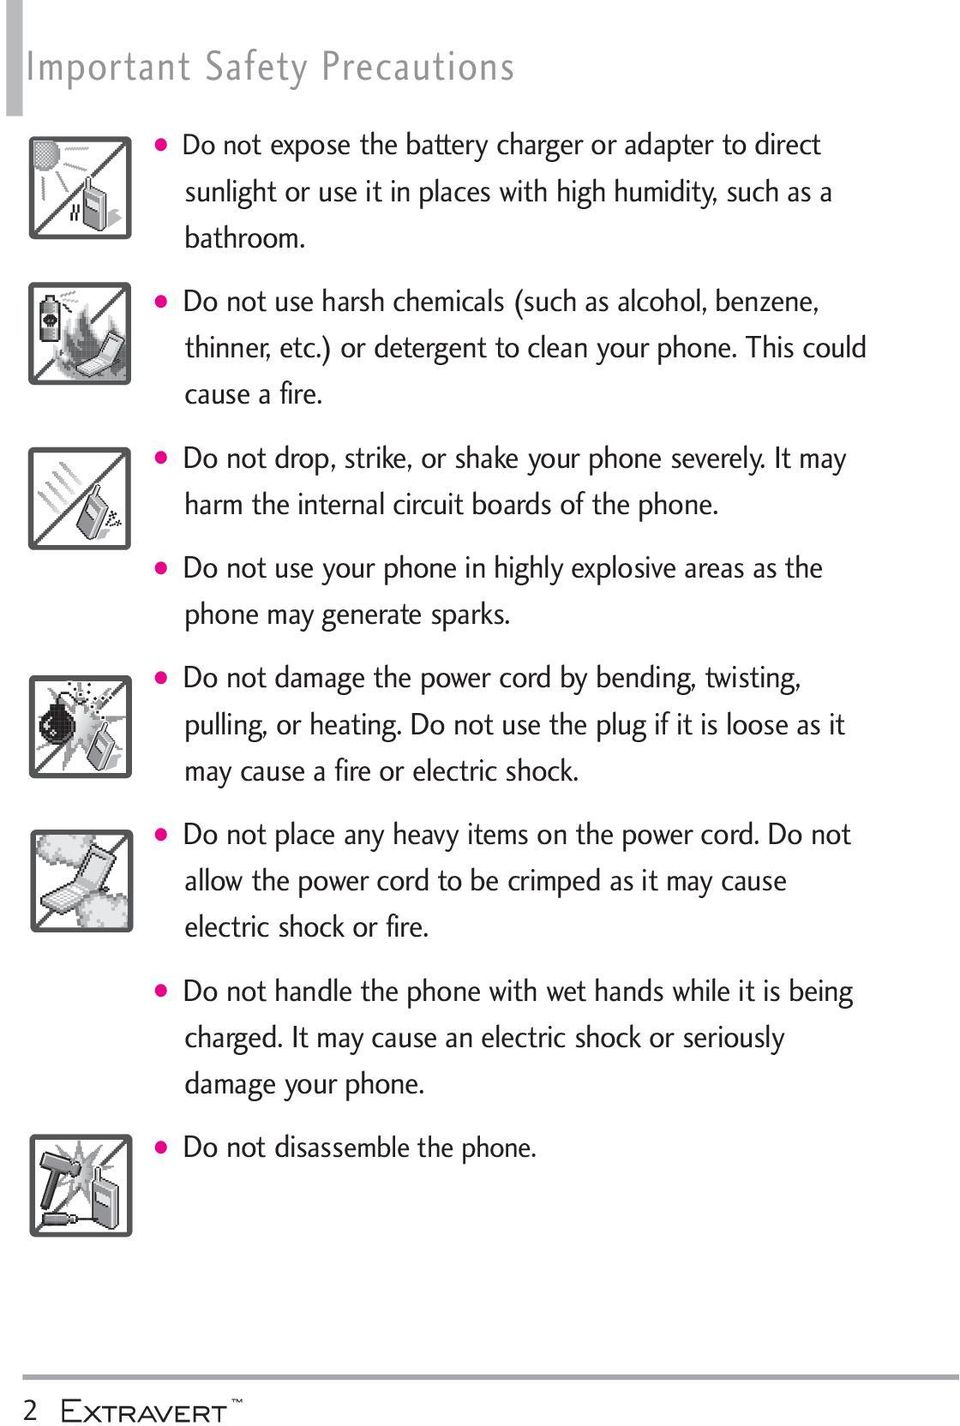 It may harm the internal circuit boards of the phone. Do not use your phone in highly explosive areas as the phone may generate sparks.